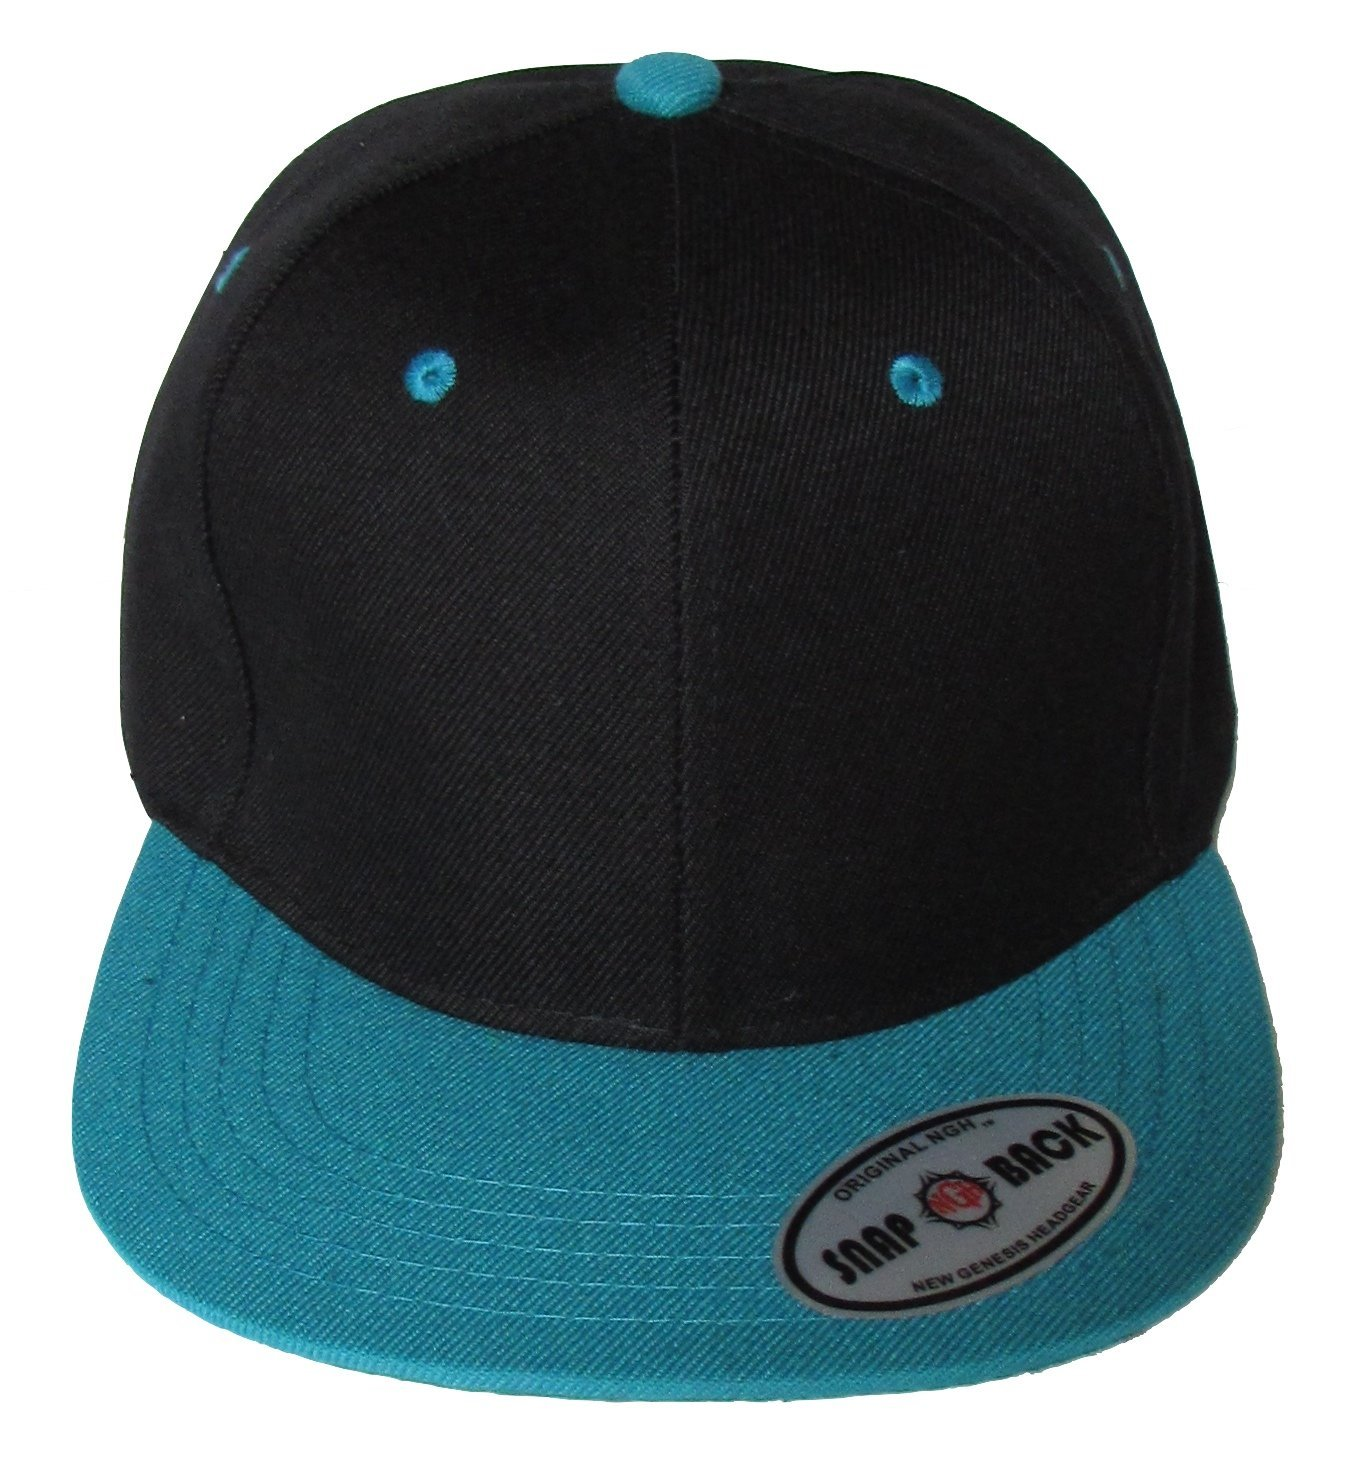 db6b7a6d193 New Plain Snapback Baseball Caps Flat bill Two Tone Black   Aqua Bill